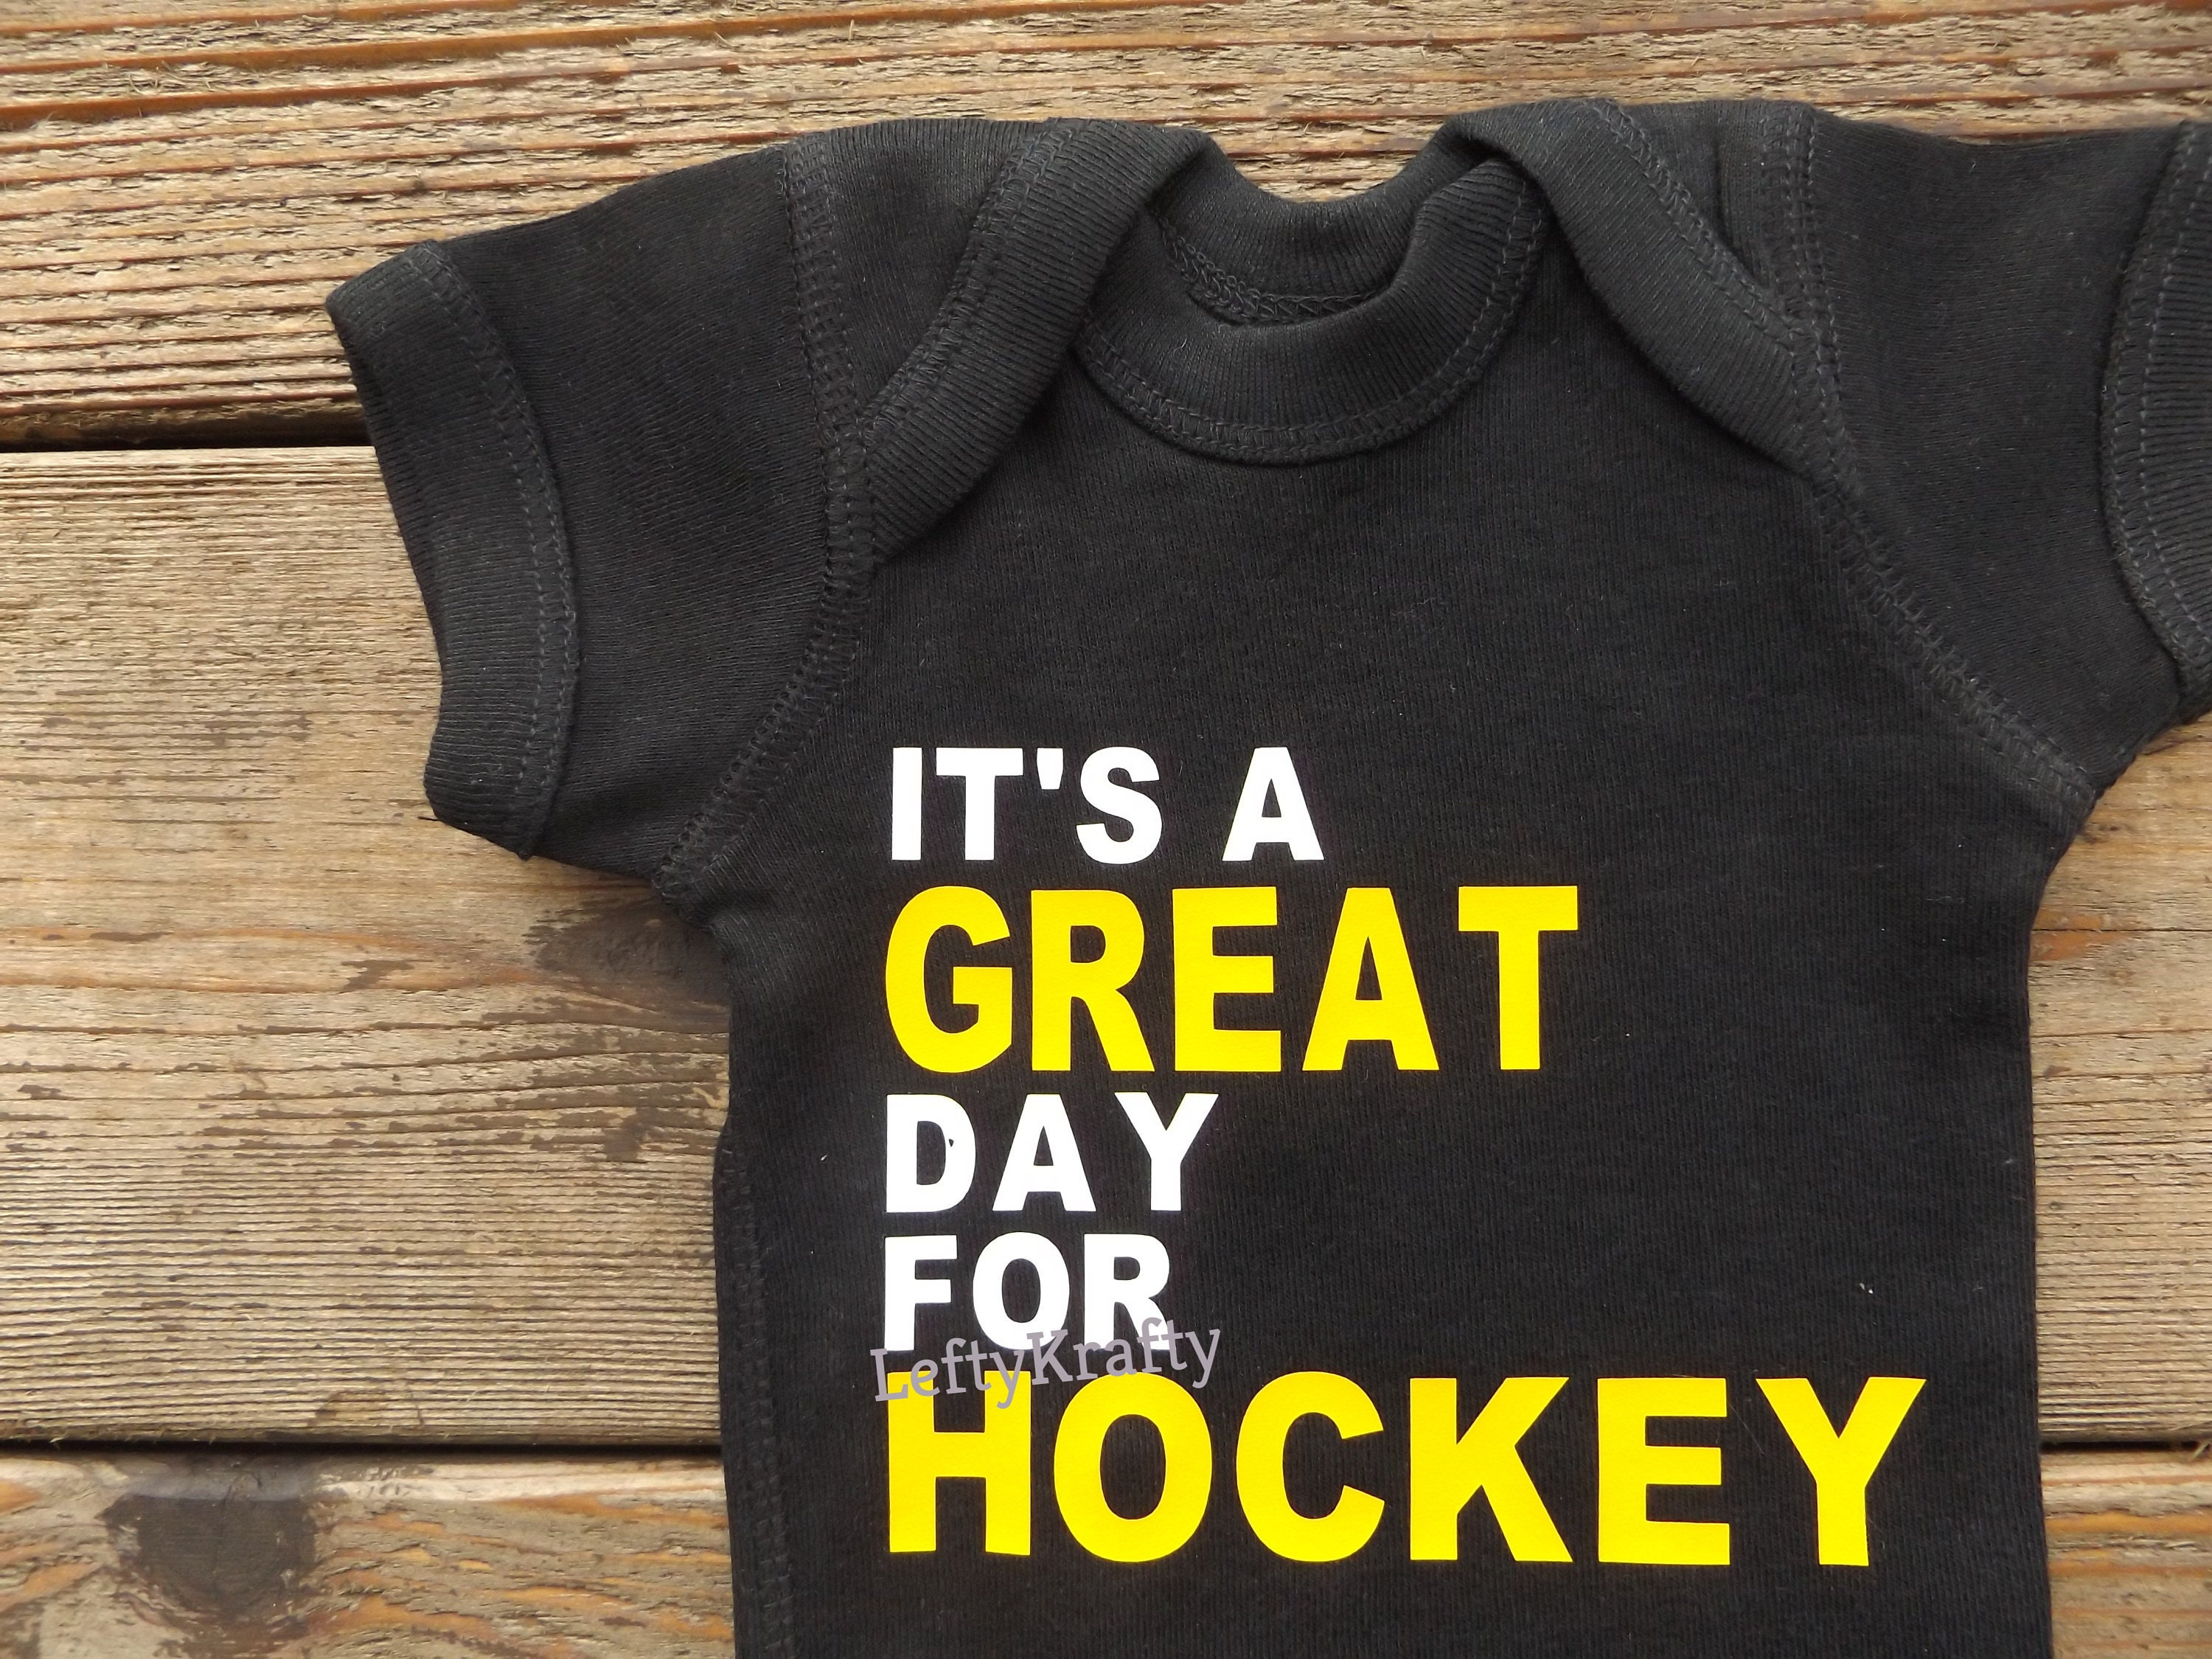 Personalized Name And Number Its A Great Day For Hockey Pittsburgh Penguins Hockey Baby Bodysuit Or T-shirt Baby Or Toddler Clothing Unisex Tshirt